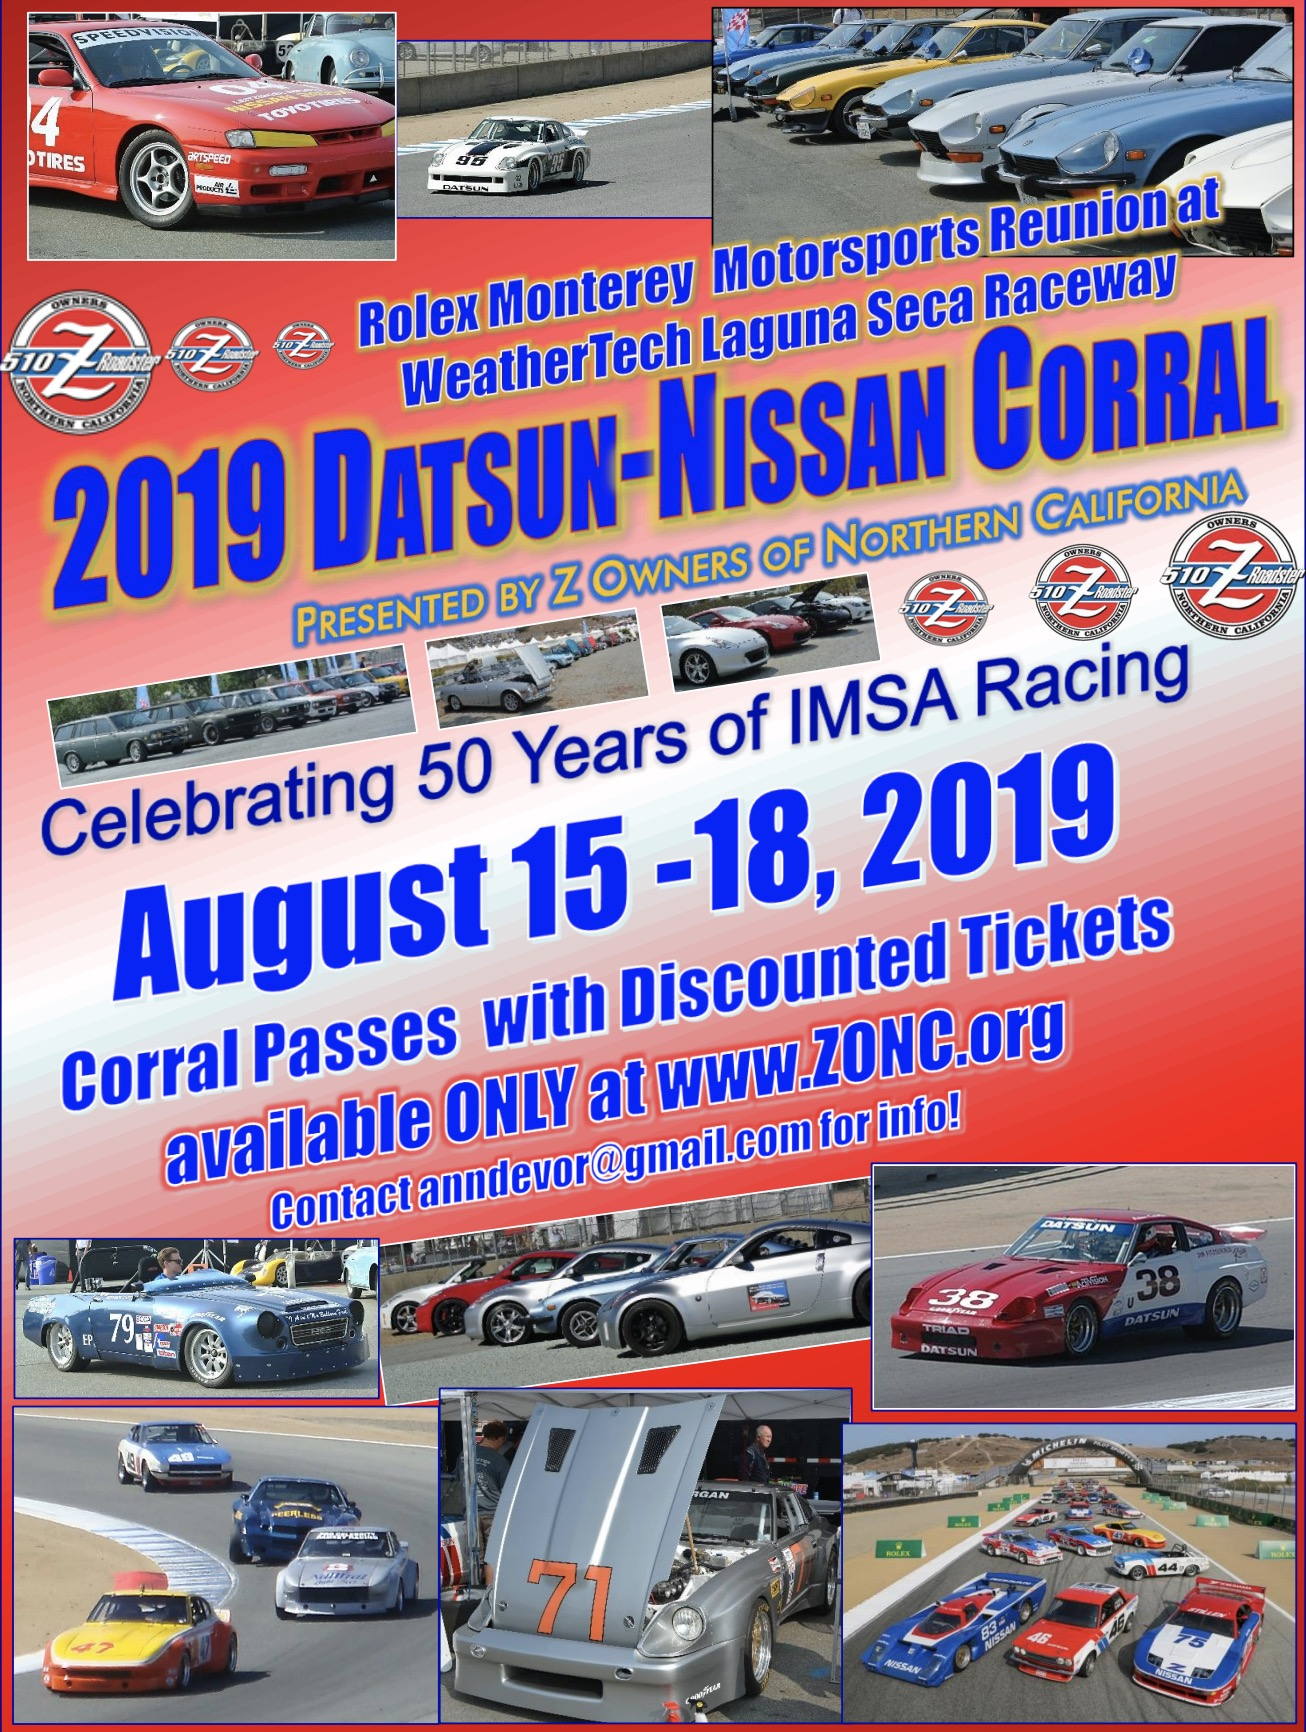 Z-Car Blog » Post Topic » EVENTS: Nissan Corral at the 2019